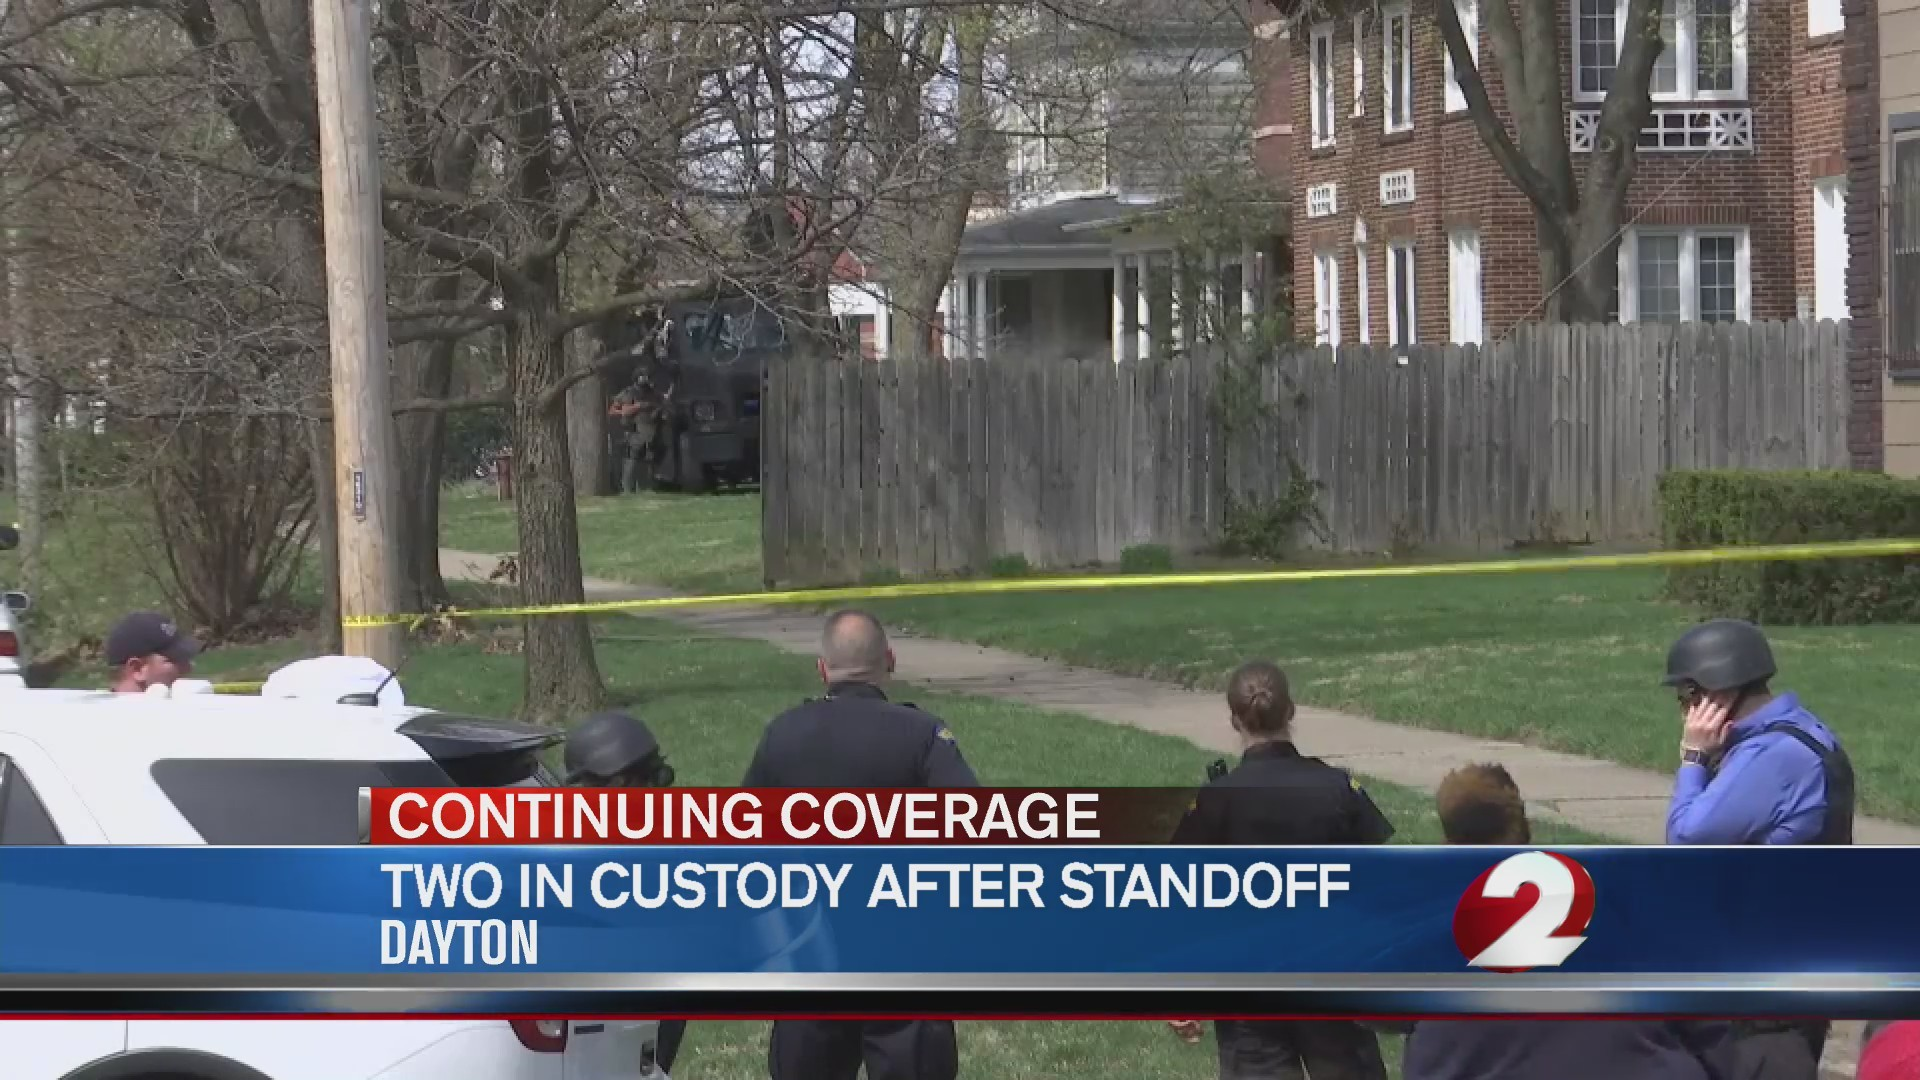 Two in custody after Dayton standoff